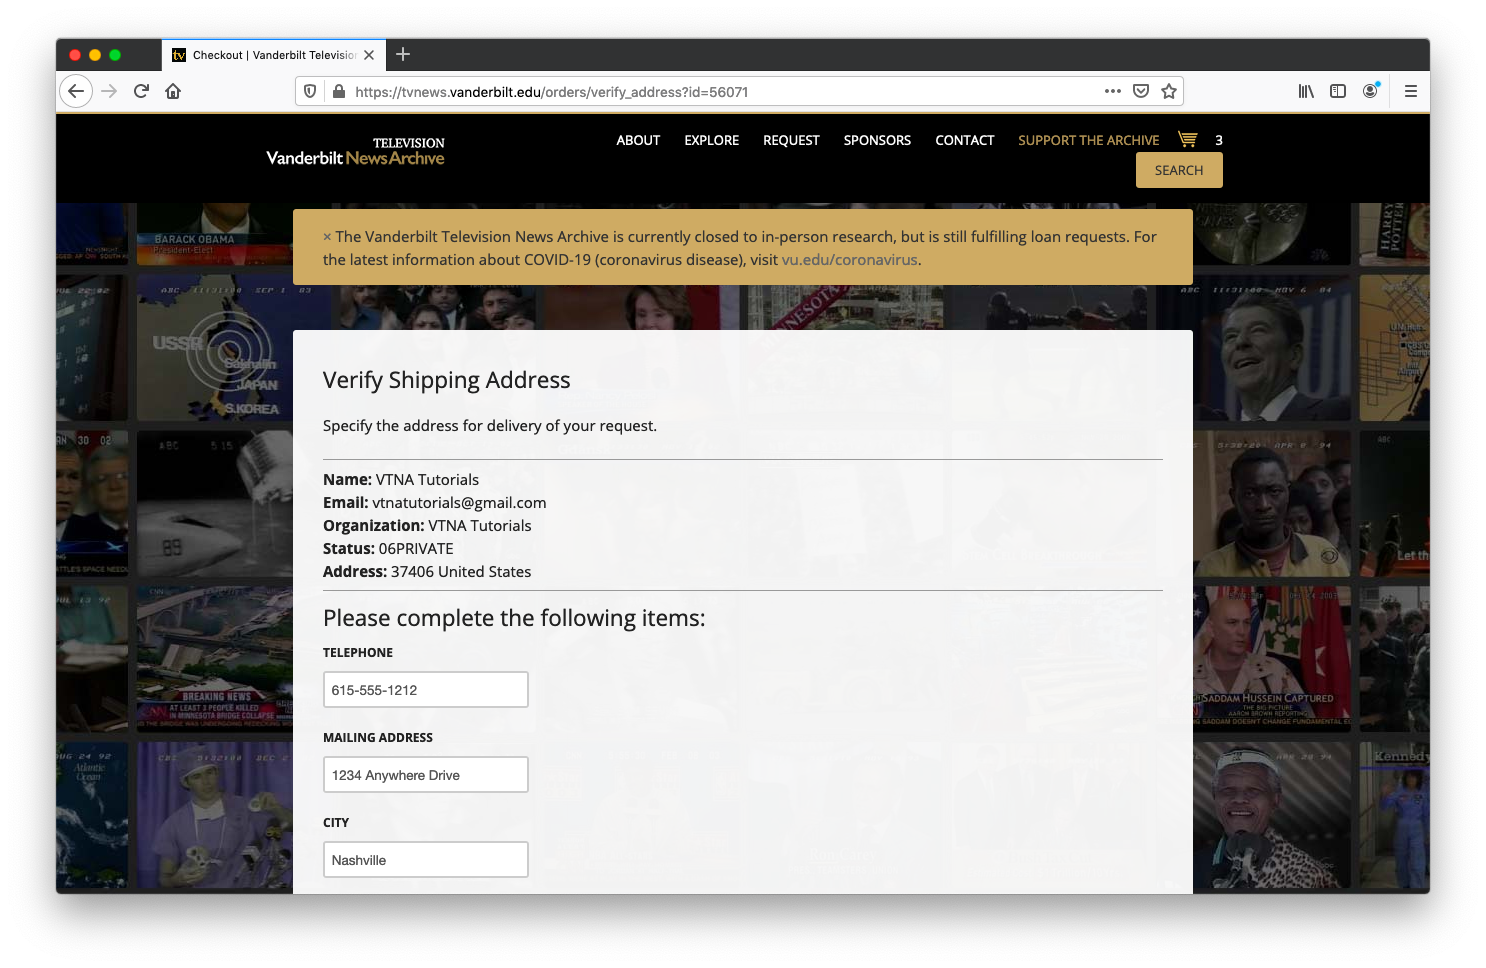 screenshot of the verify shipping address page